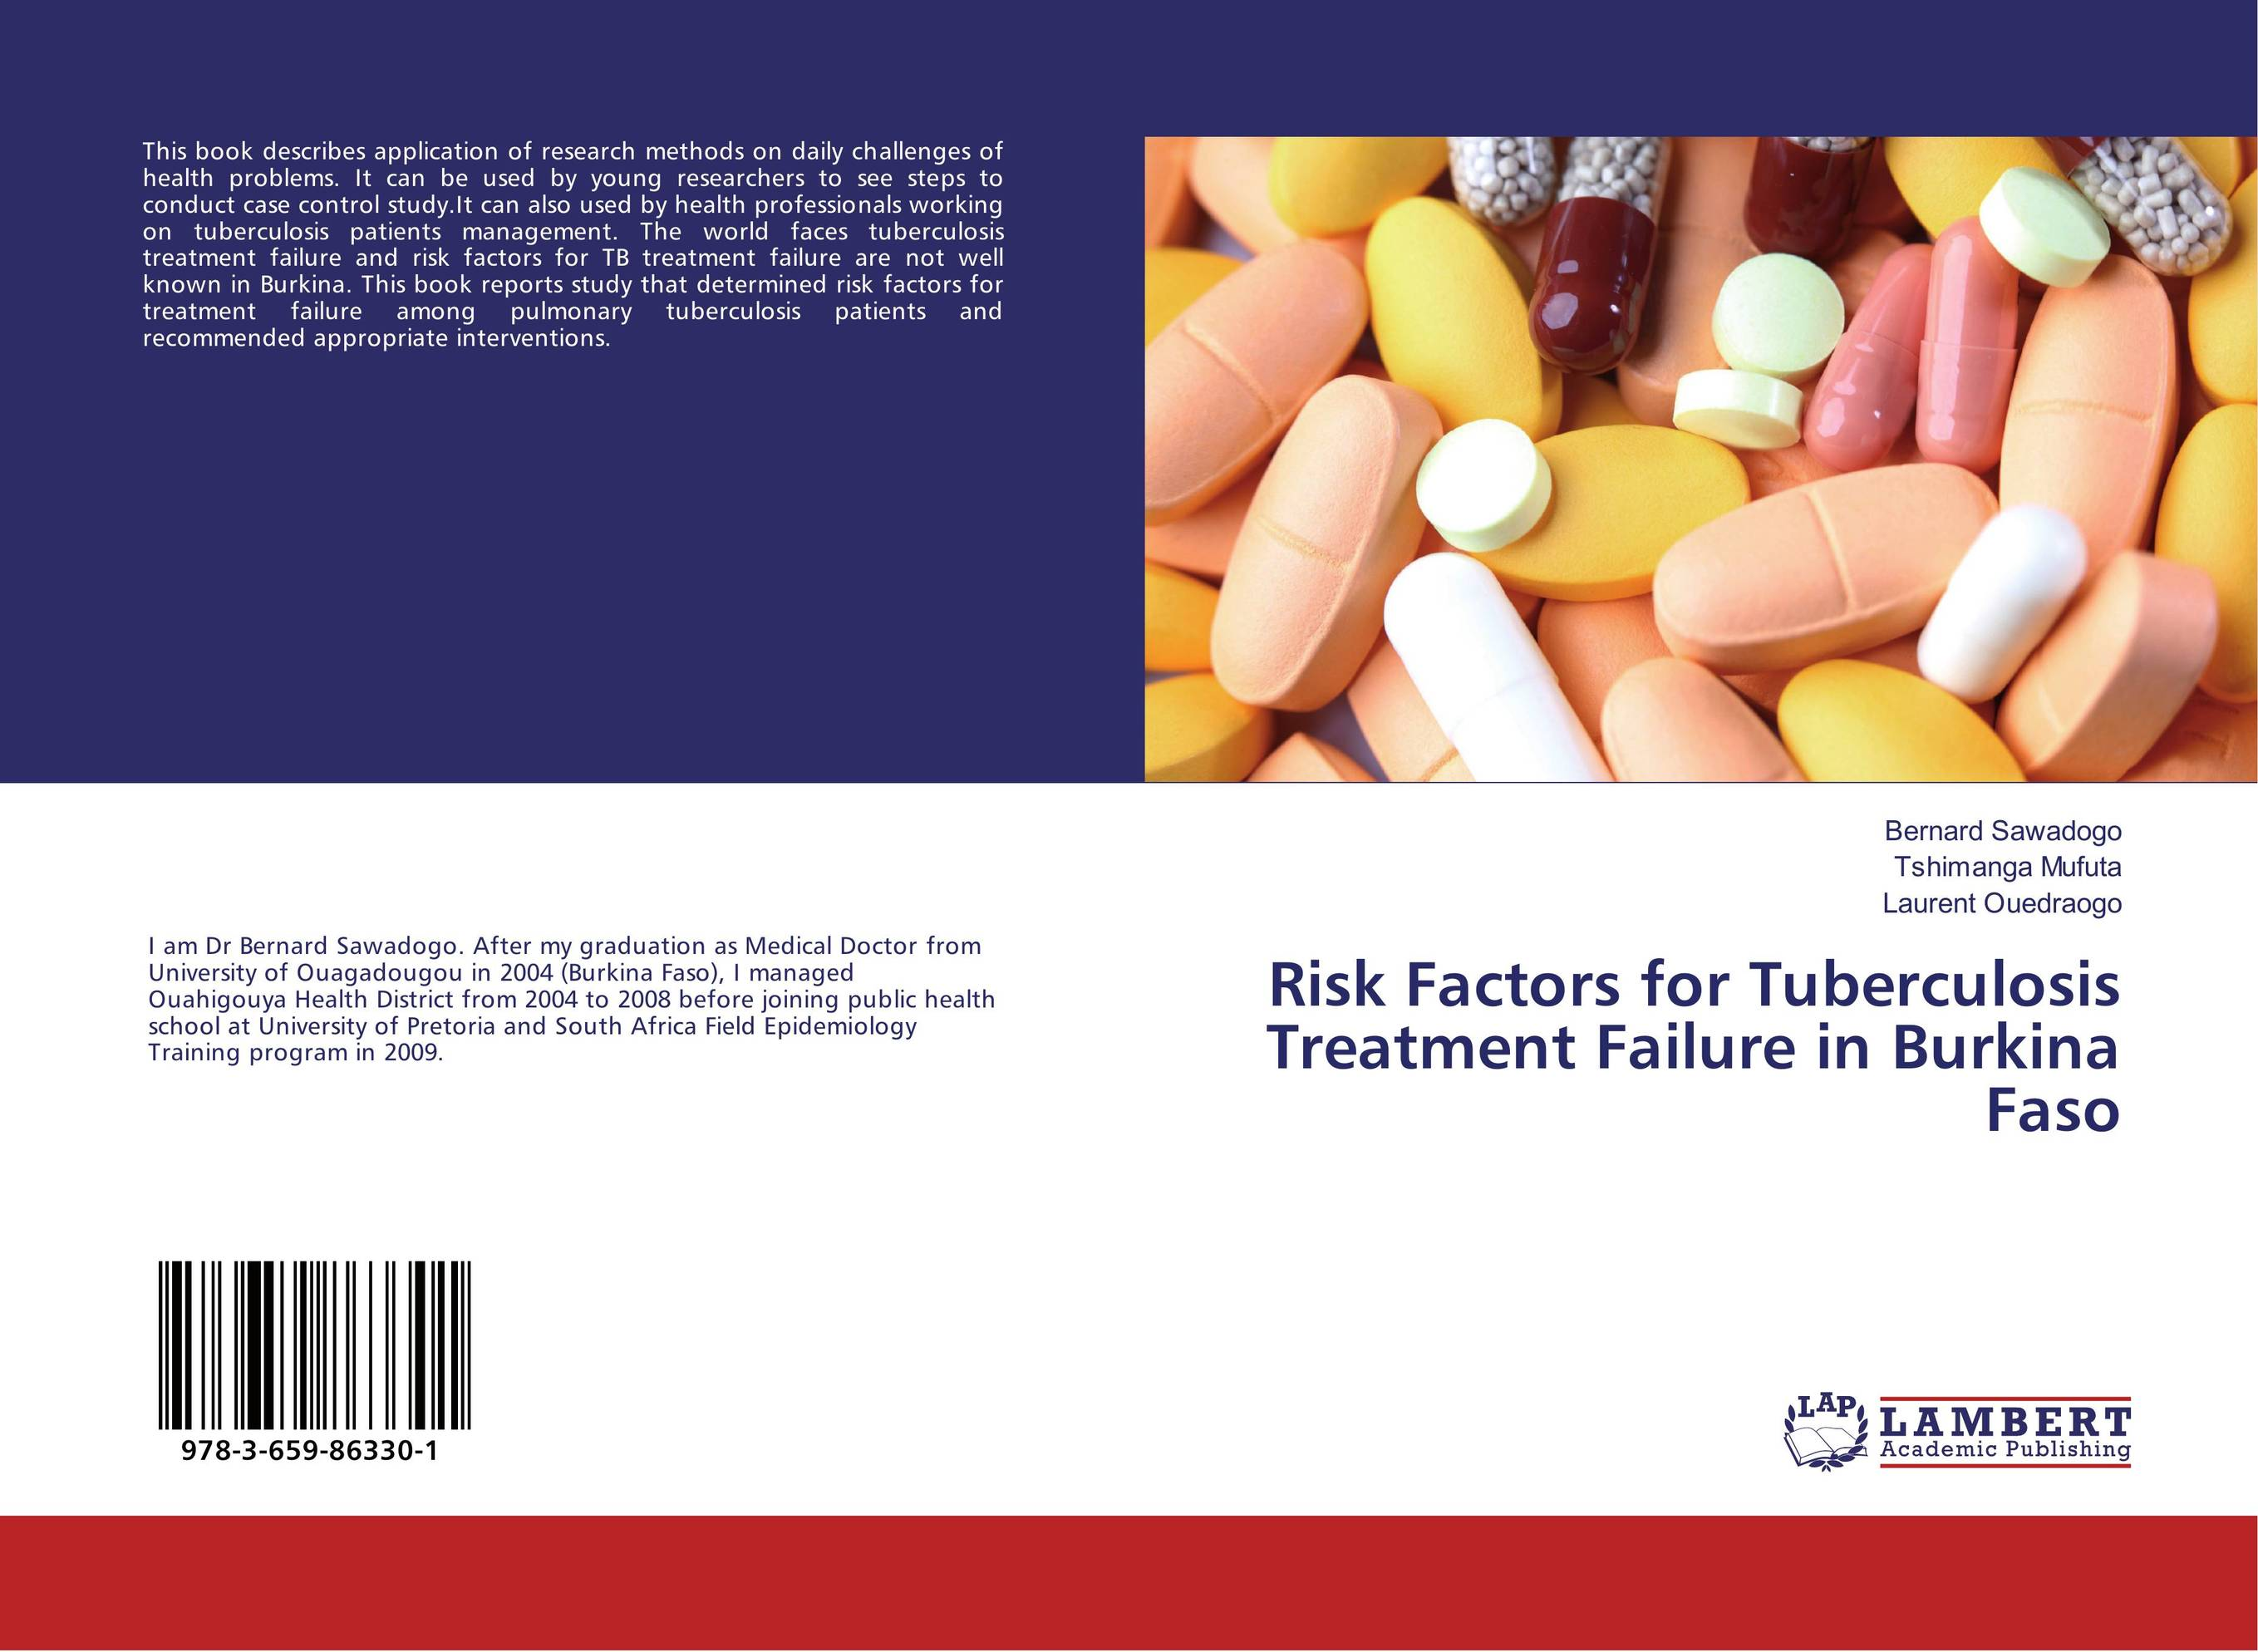 Risk Factors for Tuberculosis Treatment Failure in Burkina Faso evaluation of tuberculosis dot program case detection and management